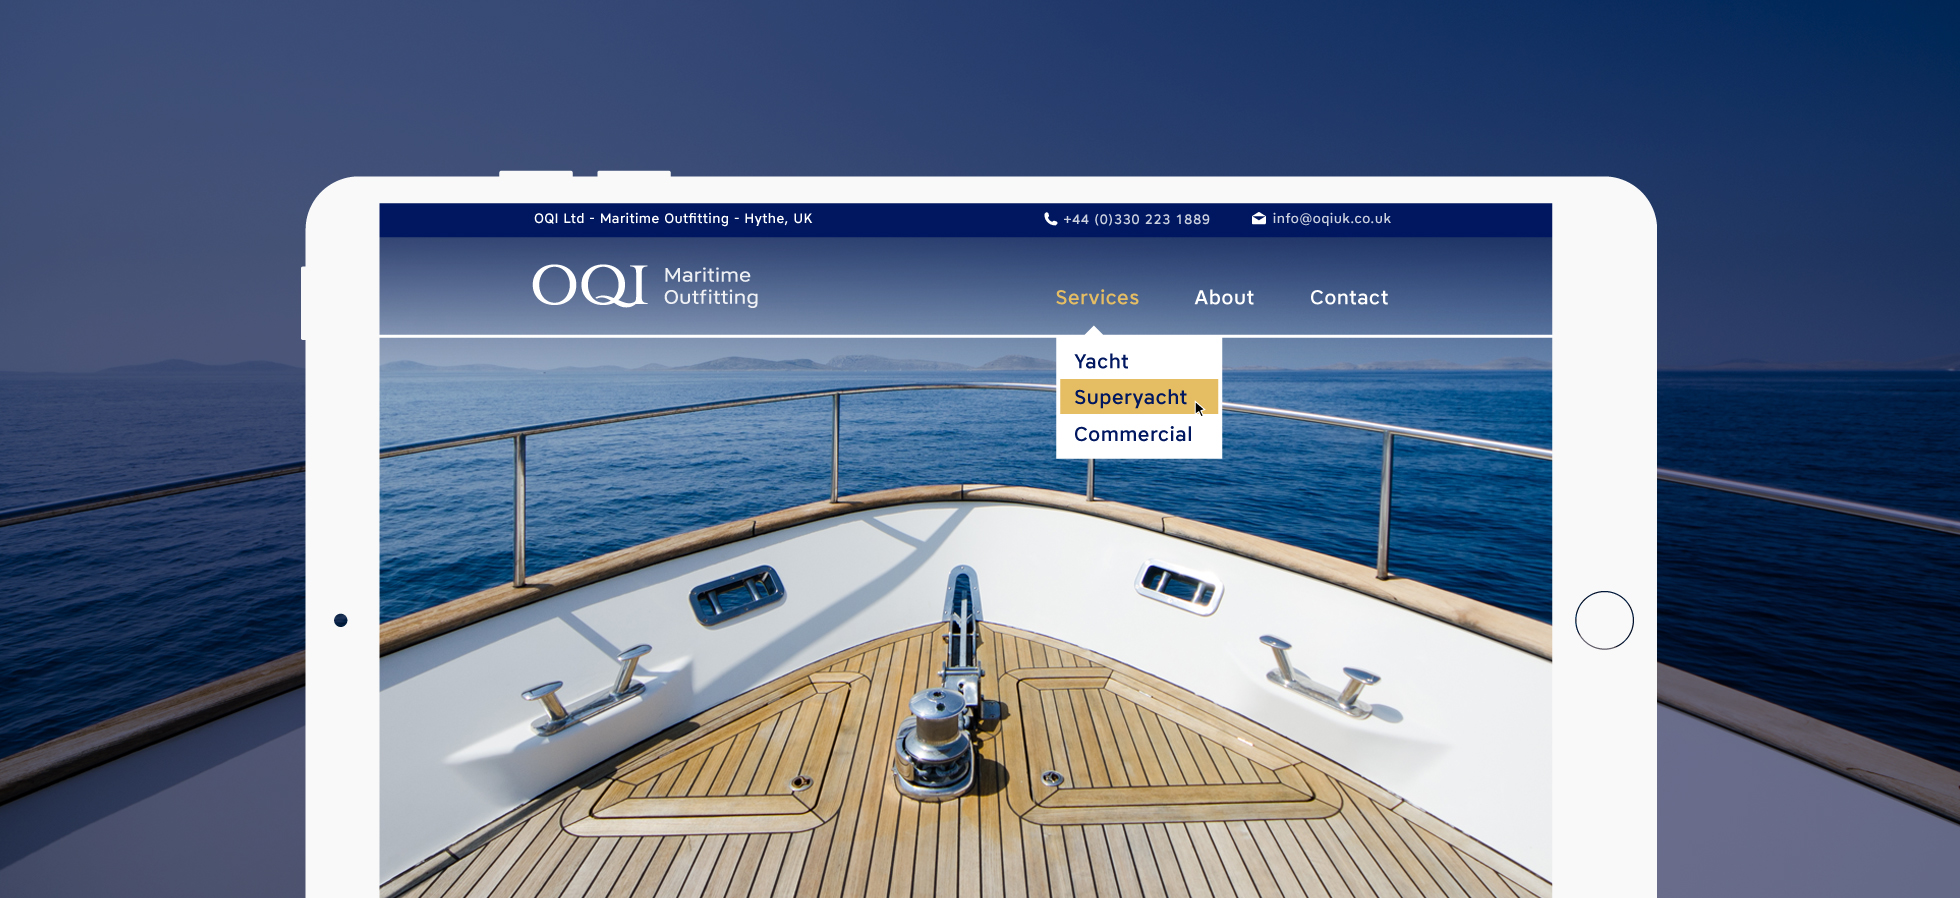 Brand Identity & Website Design for OQI Southampton